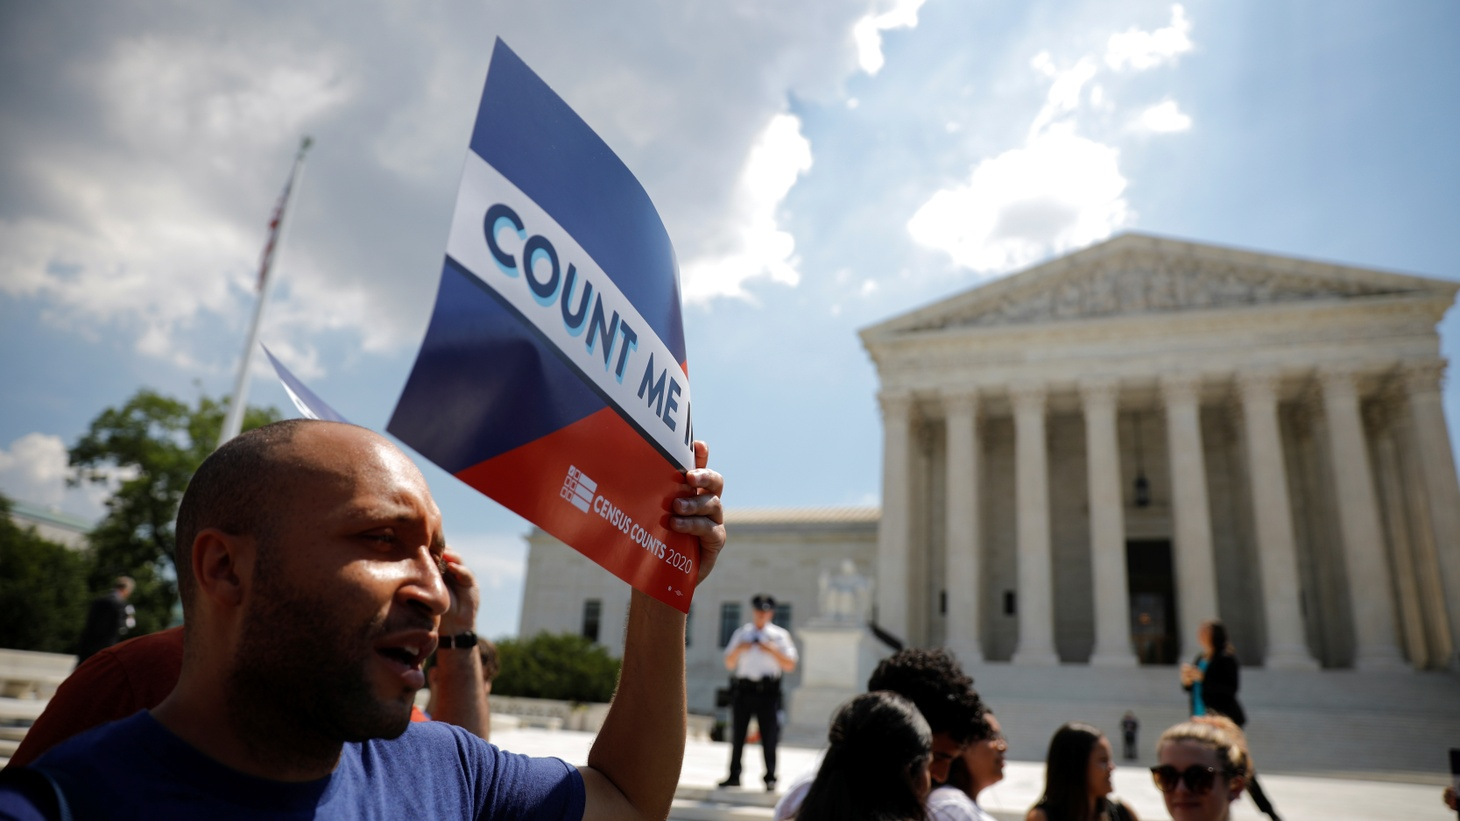 A protester holds a sign outside the U.S. Supreme Court, where the court ruled that the Trump administration did not give an adequate explanation for its plan to add a citizenship question to the 2020 census, delivering a victory to New York state and others challenging the proposal. June 27, 2019.